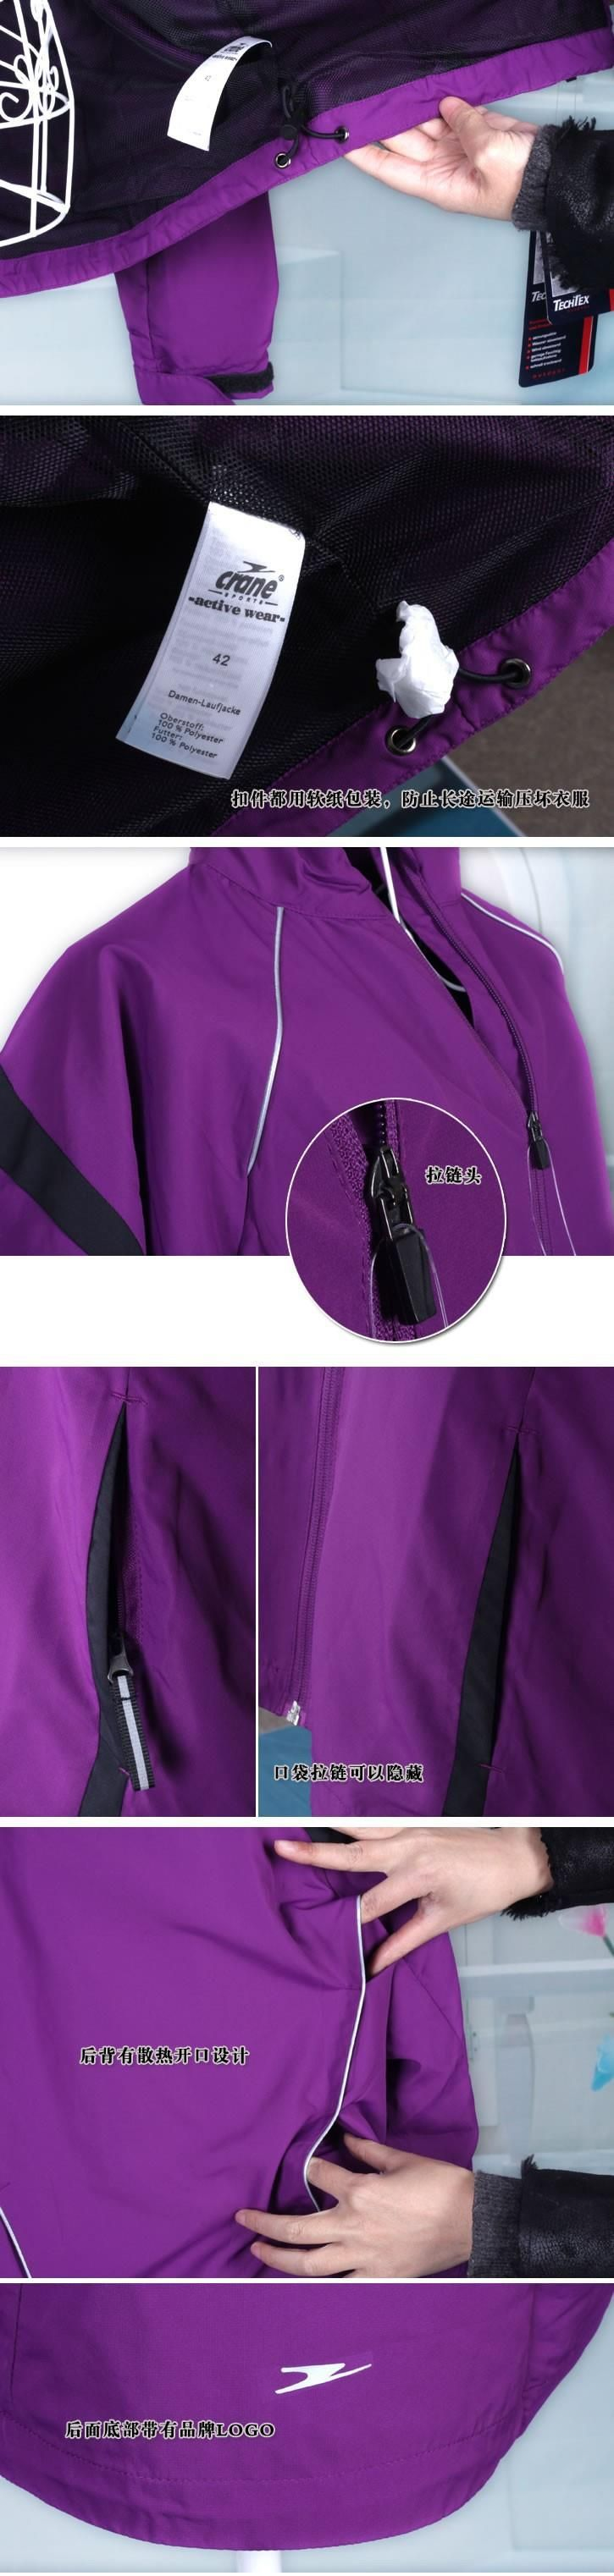 German woman Fitness jacket wind proof running clothing sportswear Fitness Excercise cycling bike bicycle sports running Cloth | #RunningJackets